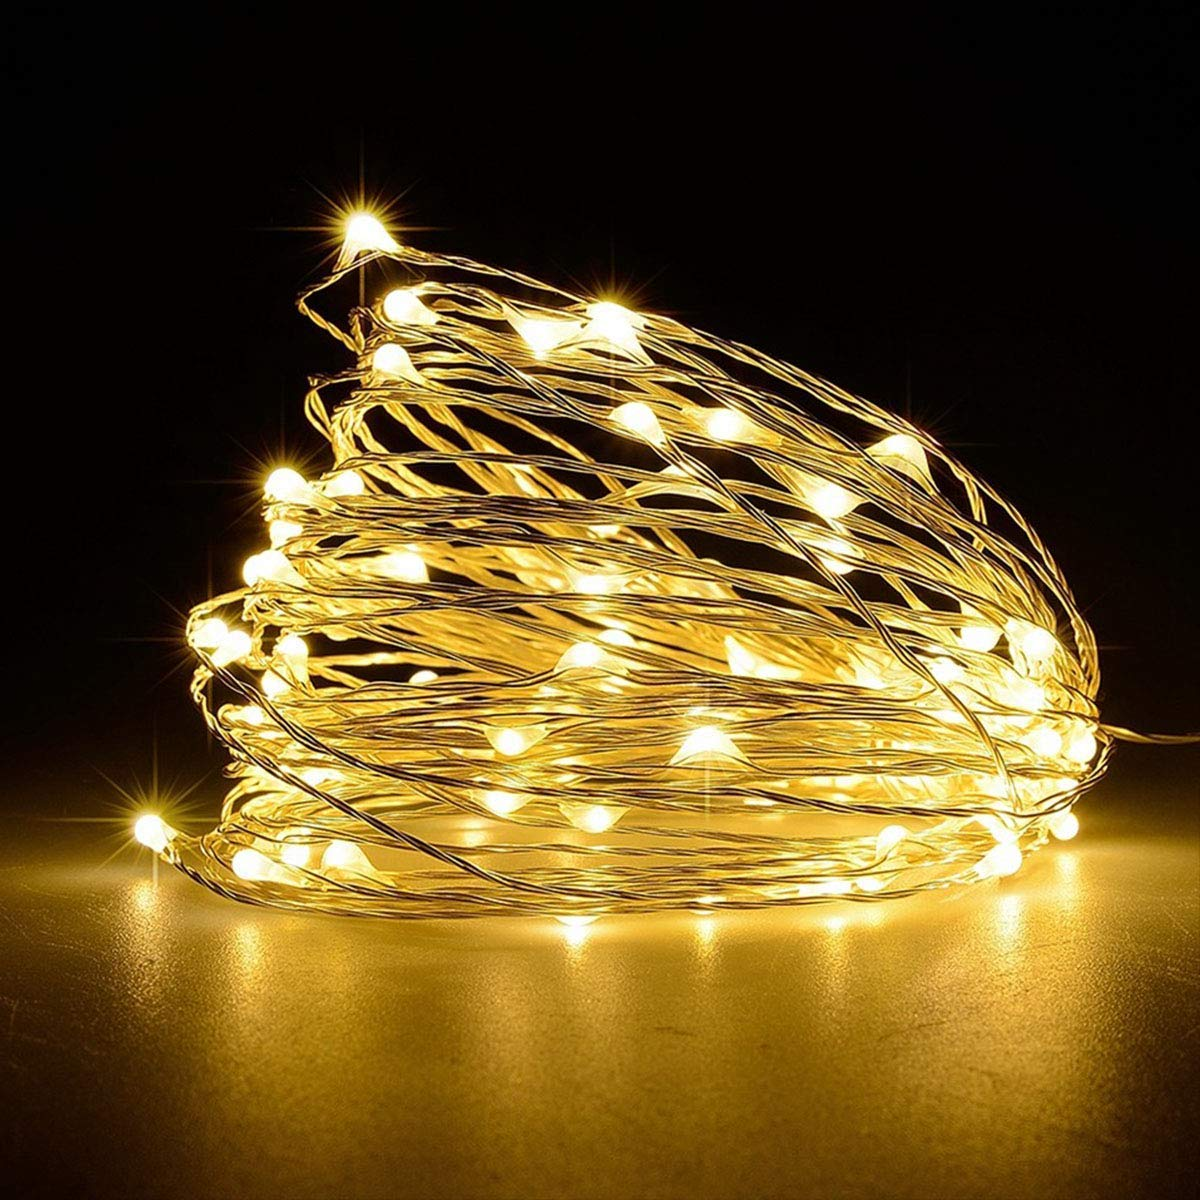 Battery Operated Fairy String Lights, Led Mini String Lights 50 LED 16.5 FT Battery Powered Copper Wire Starry Fairy Lights for Indoor Outdoor Wedding Home Garden Party Decoration(Warm White)